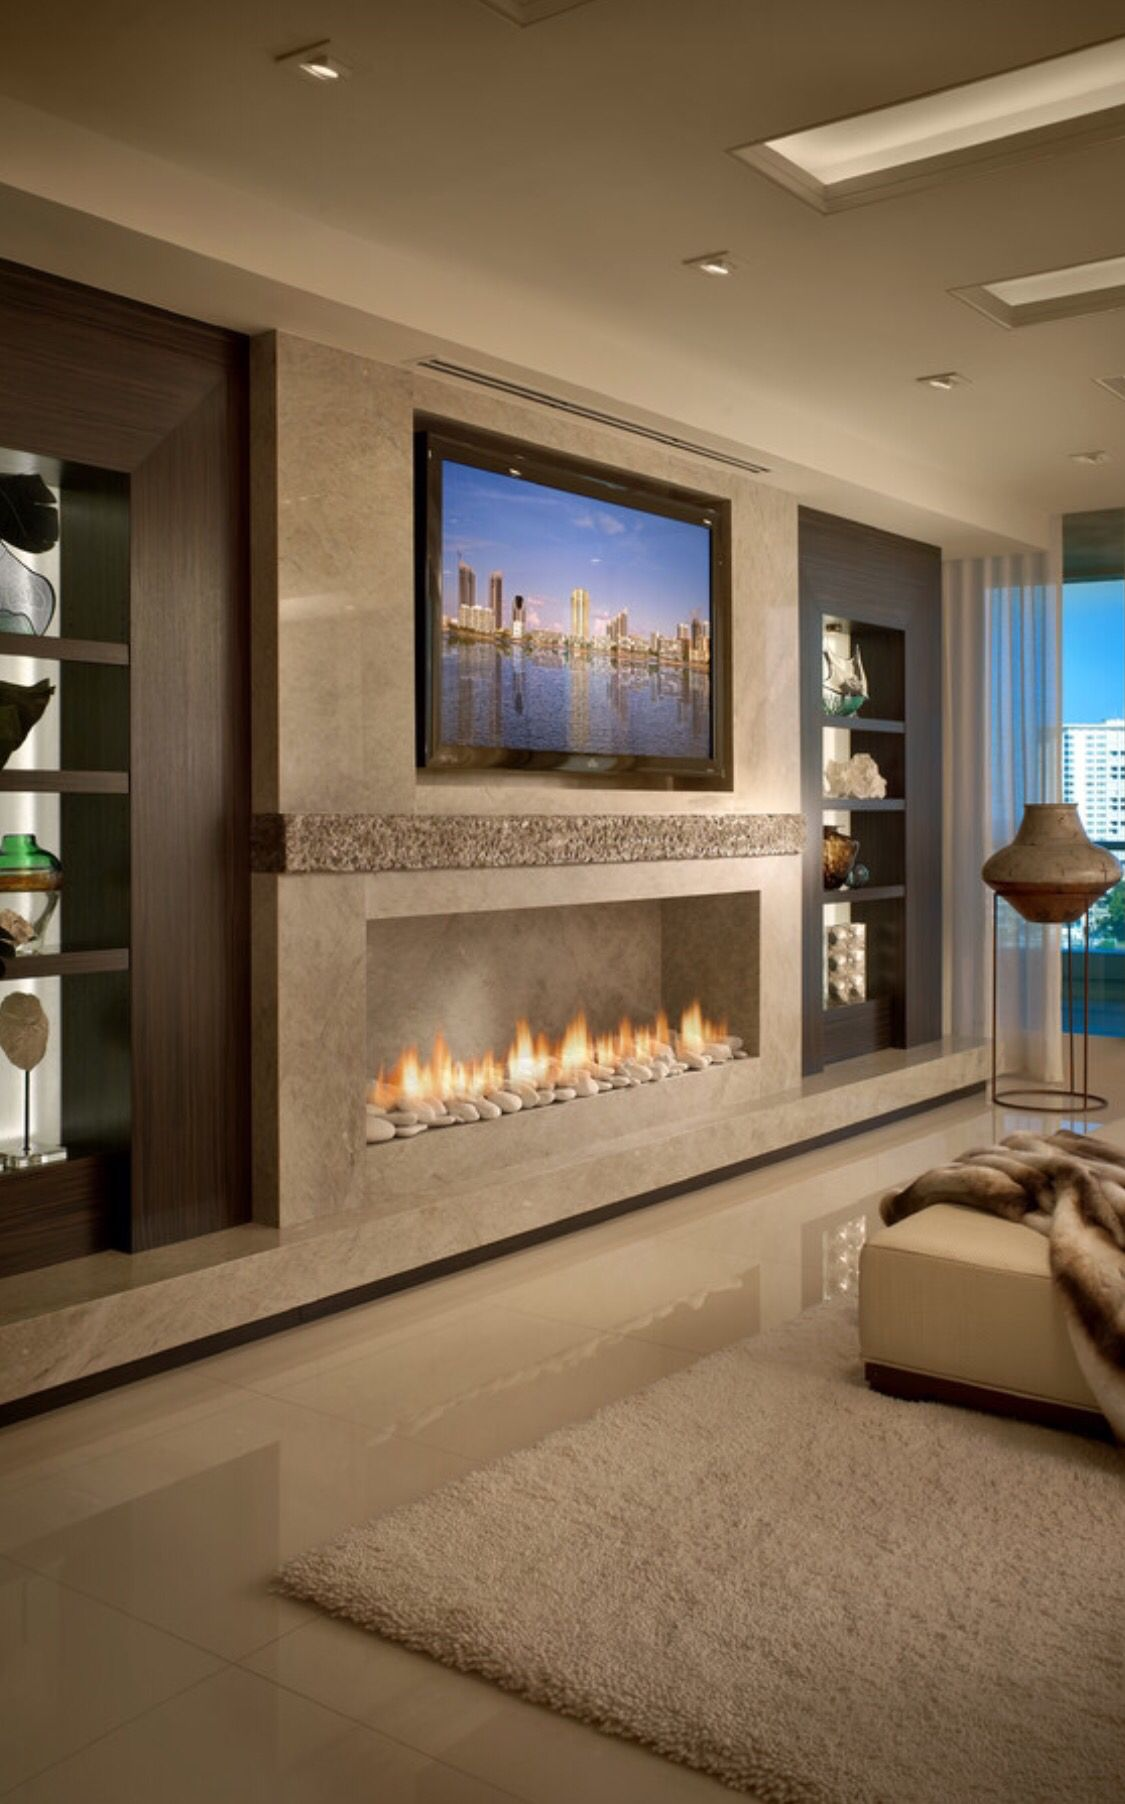 Fireplace Wall Units Great Fireplace Wall Units In 2019 Home Decor Fireplace